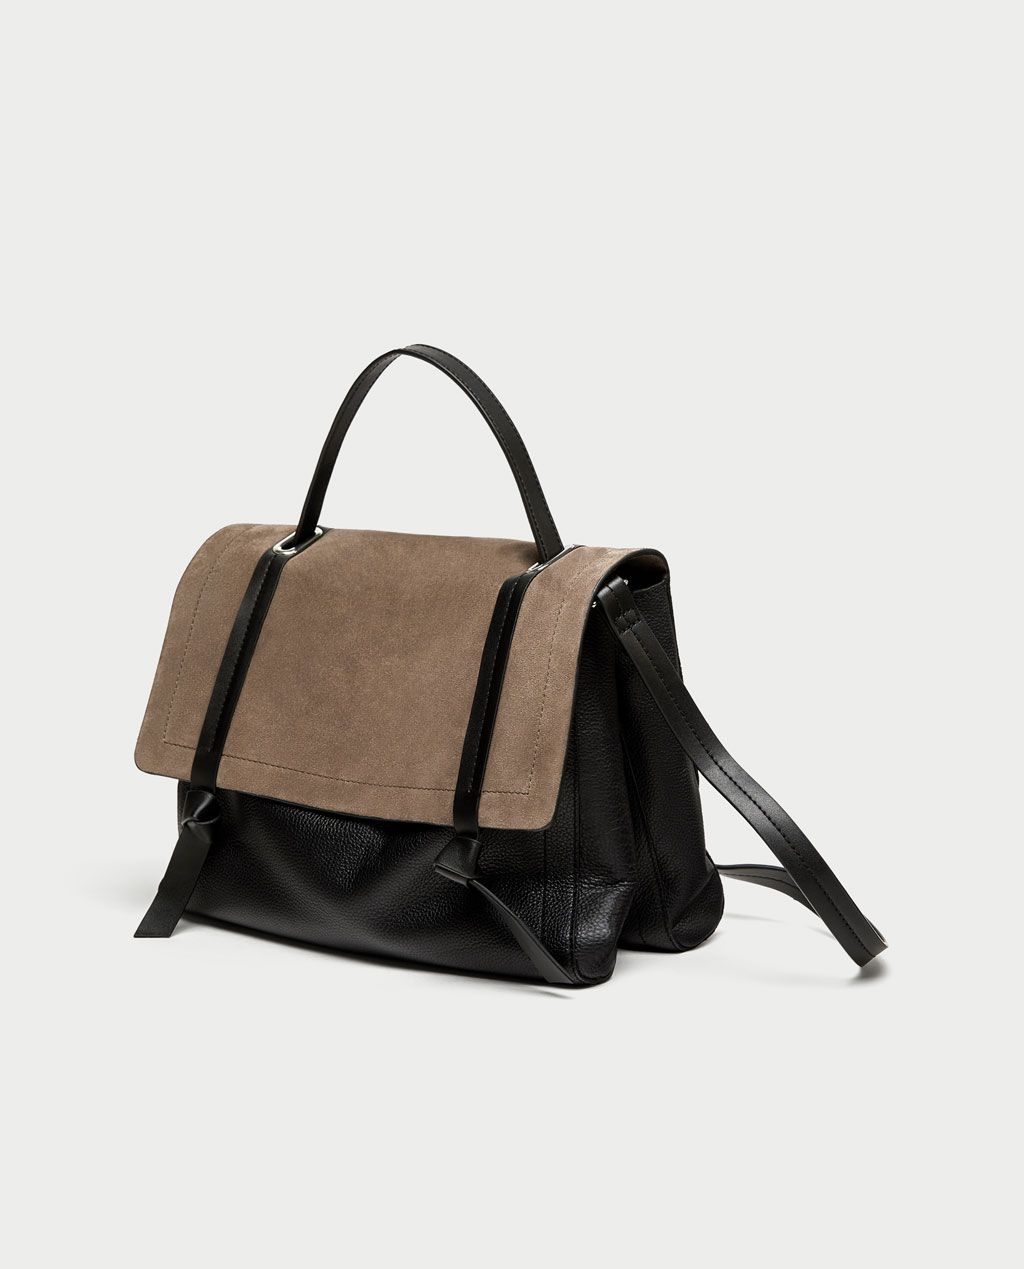 c215cee5fae COMBINED LEATHER CITY BAG-Leather-BAGS-WOMAN | ZARA United States ...